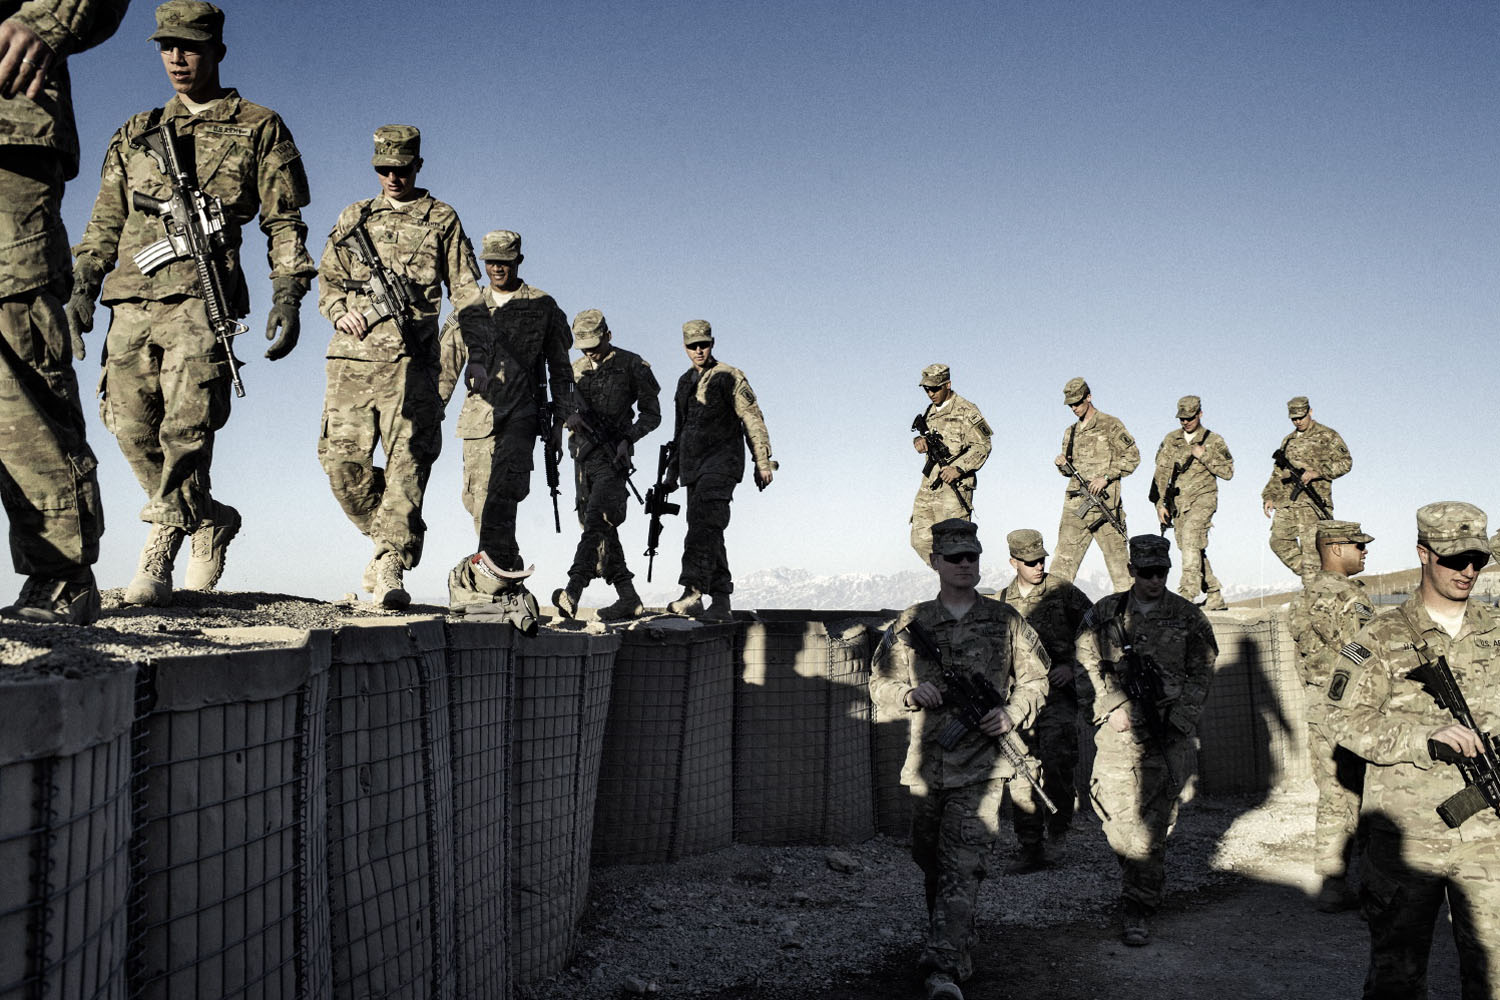 Paratroopers from Bull Battery, 4-319th Airborne Field Artillery Battalion line up for their final unit photo before leaving Afghanistan for their home base in Germany. The traditional unit picture is often one of the last events before soldiers leave a combat zone. Bull Battery has served a nine-month combat tour in eastern Afghanistan.